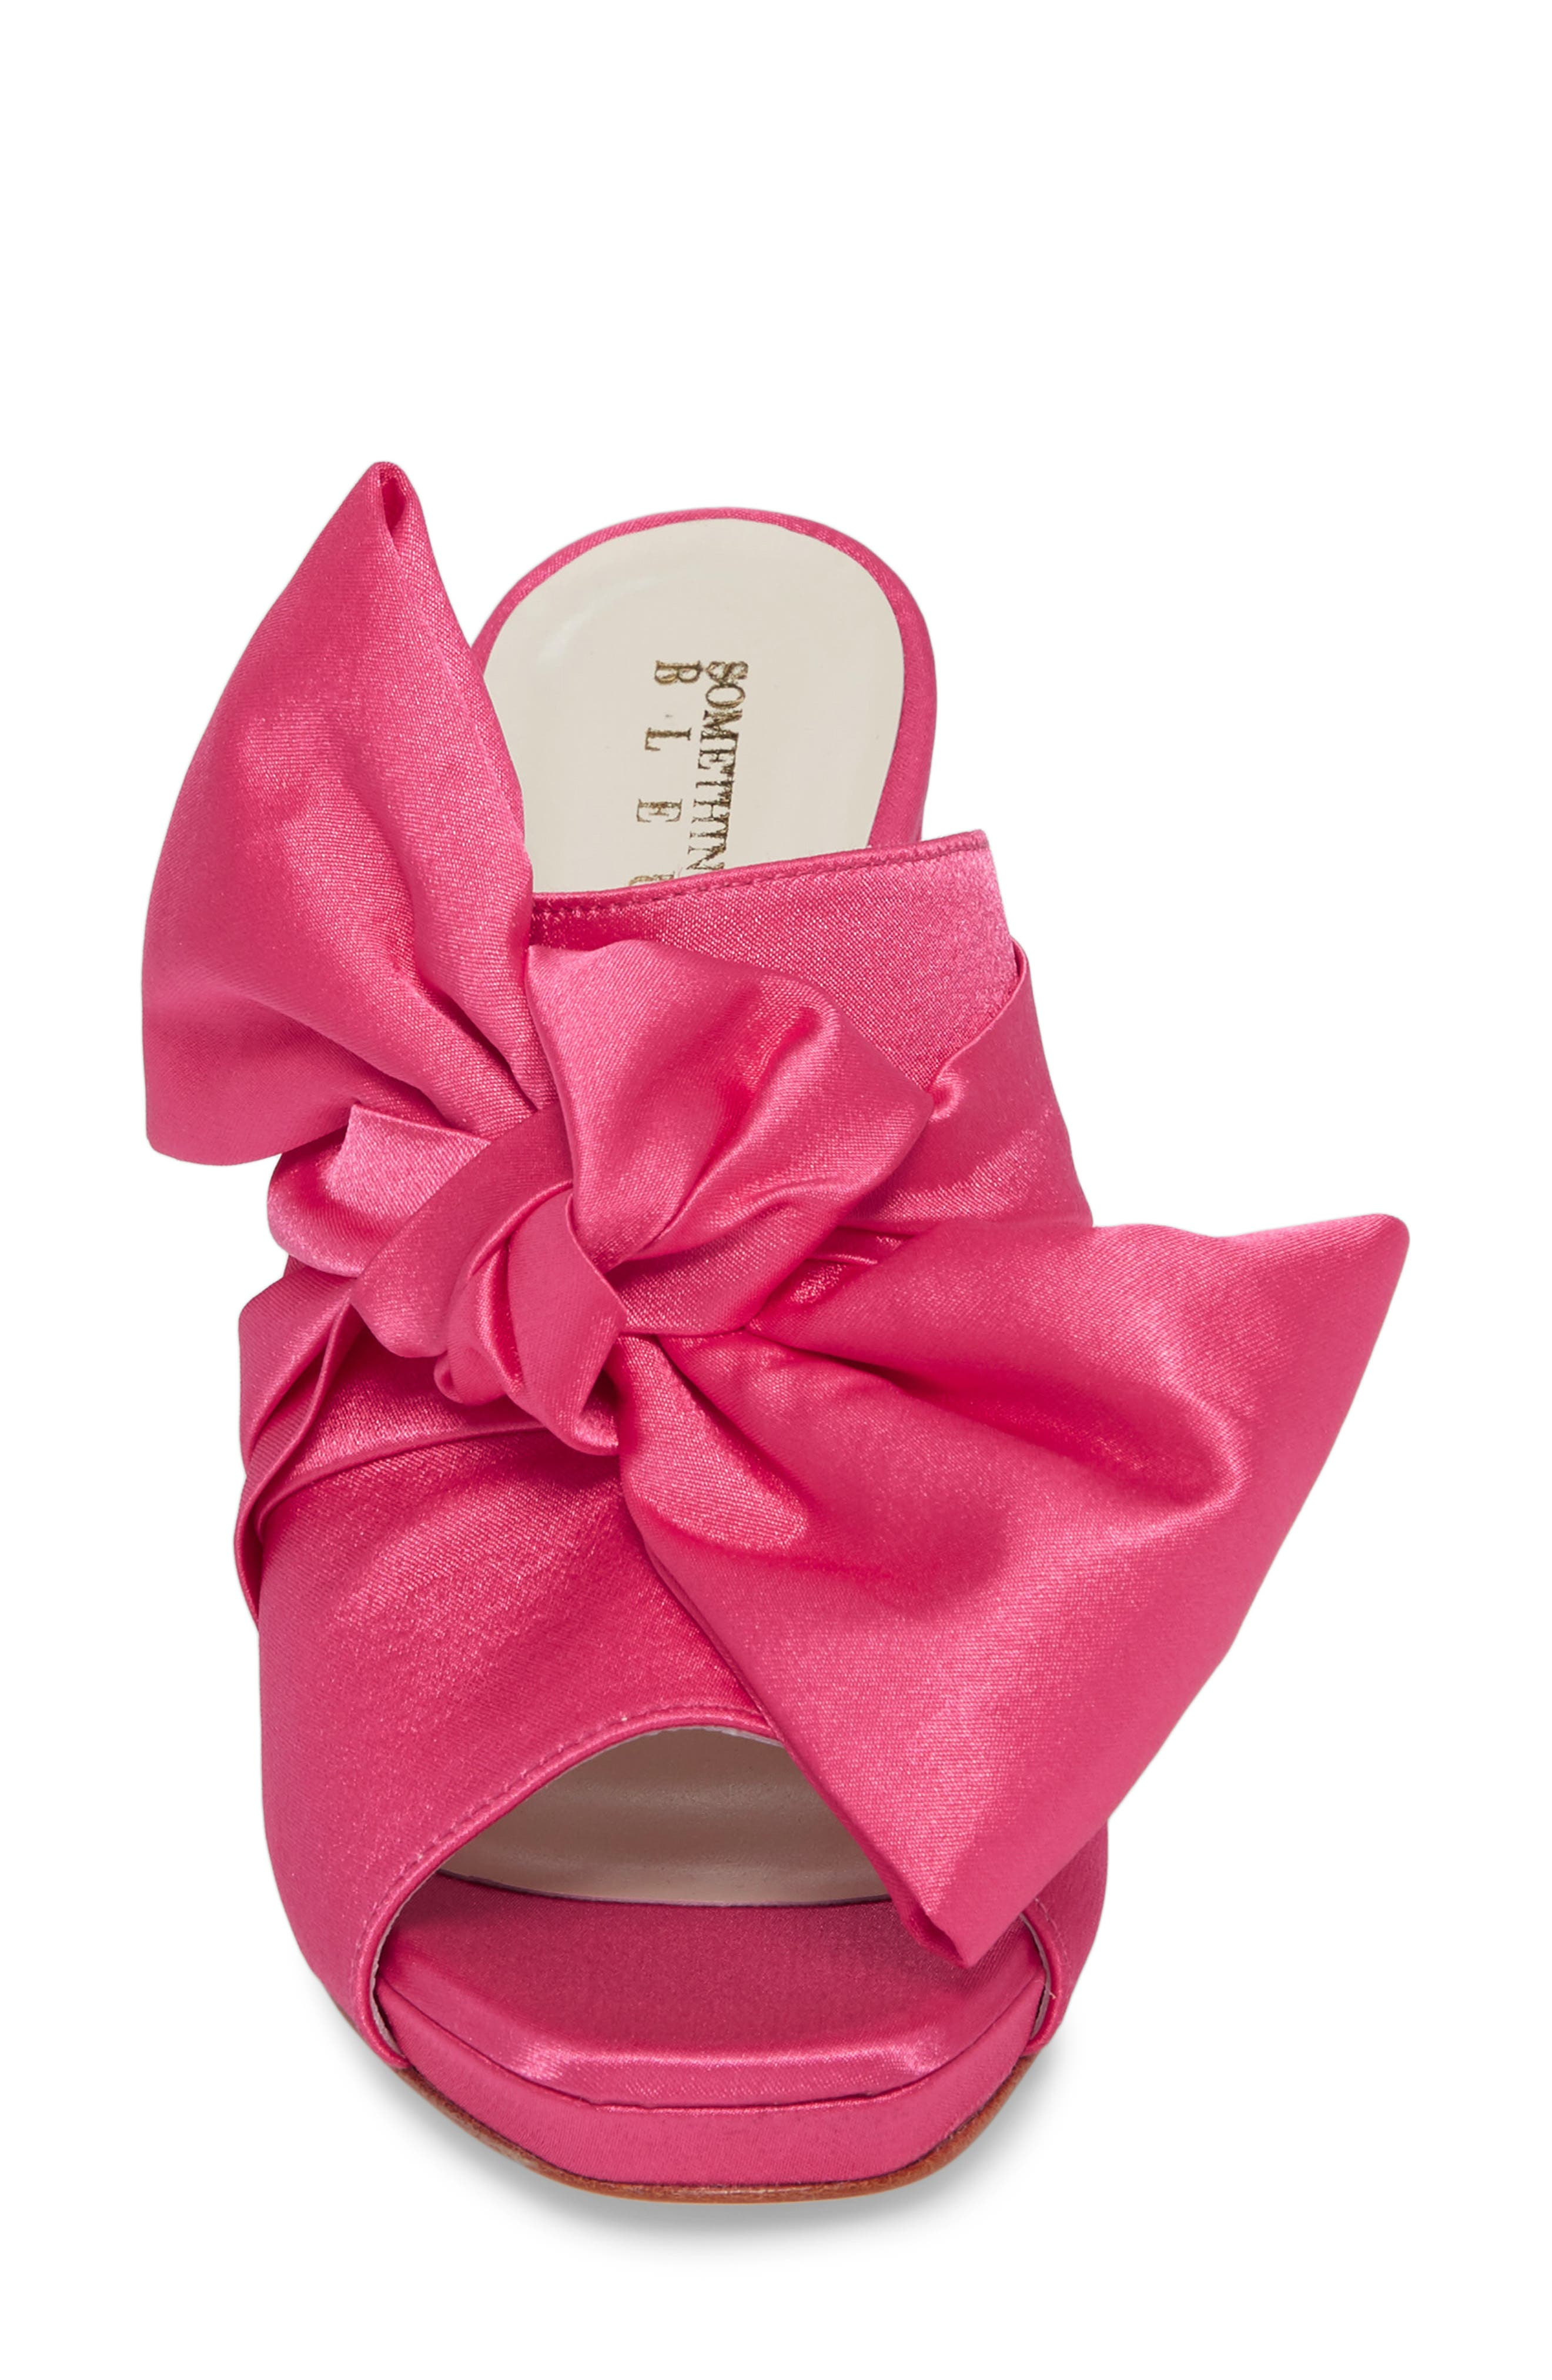 Elisa Knotted Bow Mule,                             Alternate thumbnail 4, color,                             Hot Pink Satin